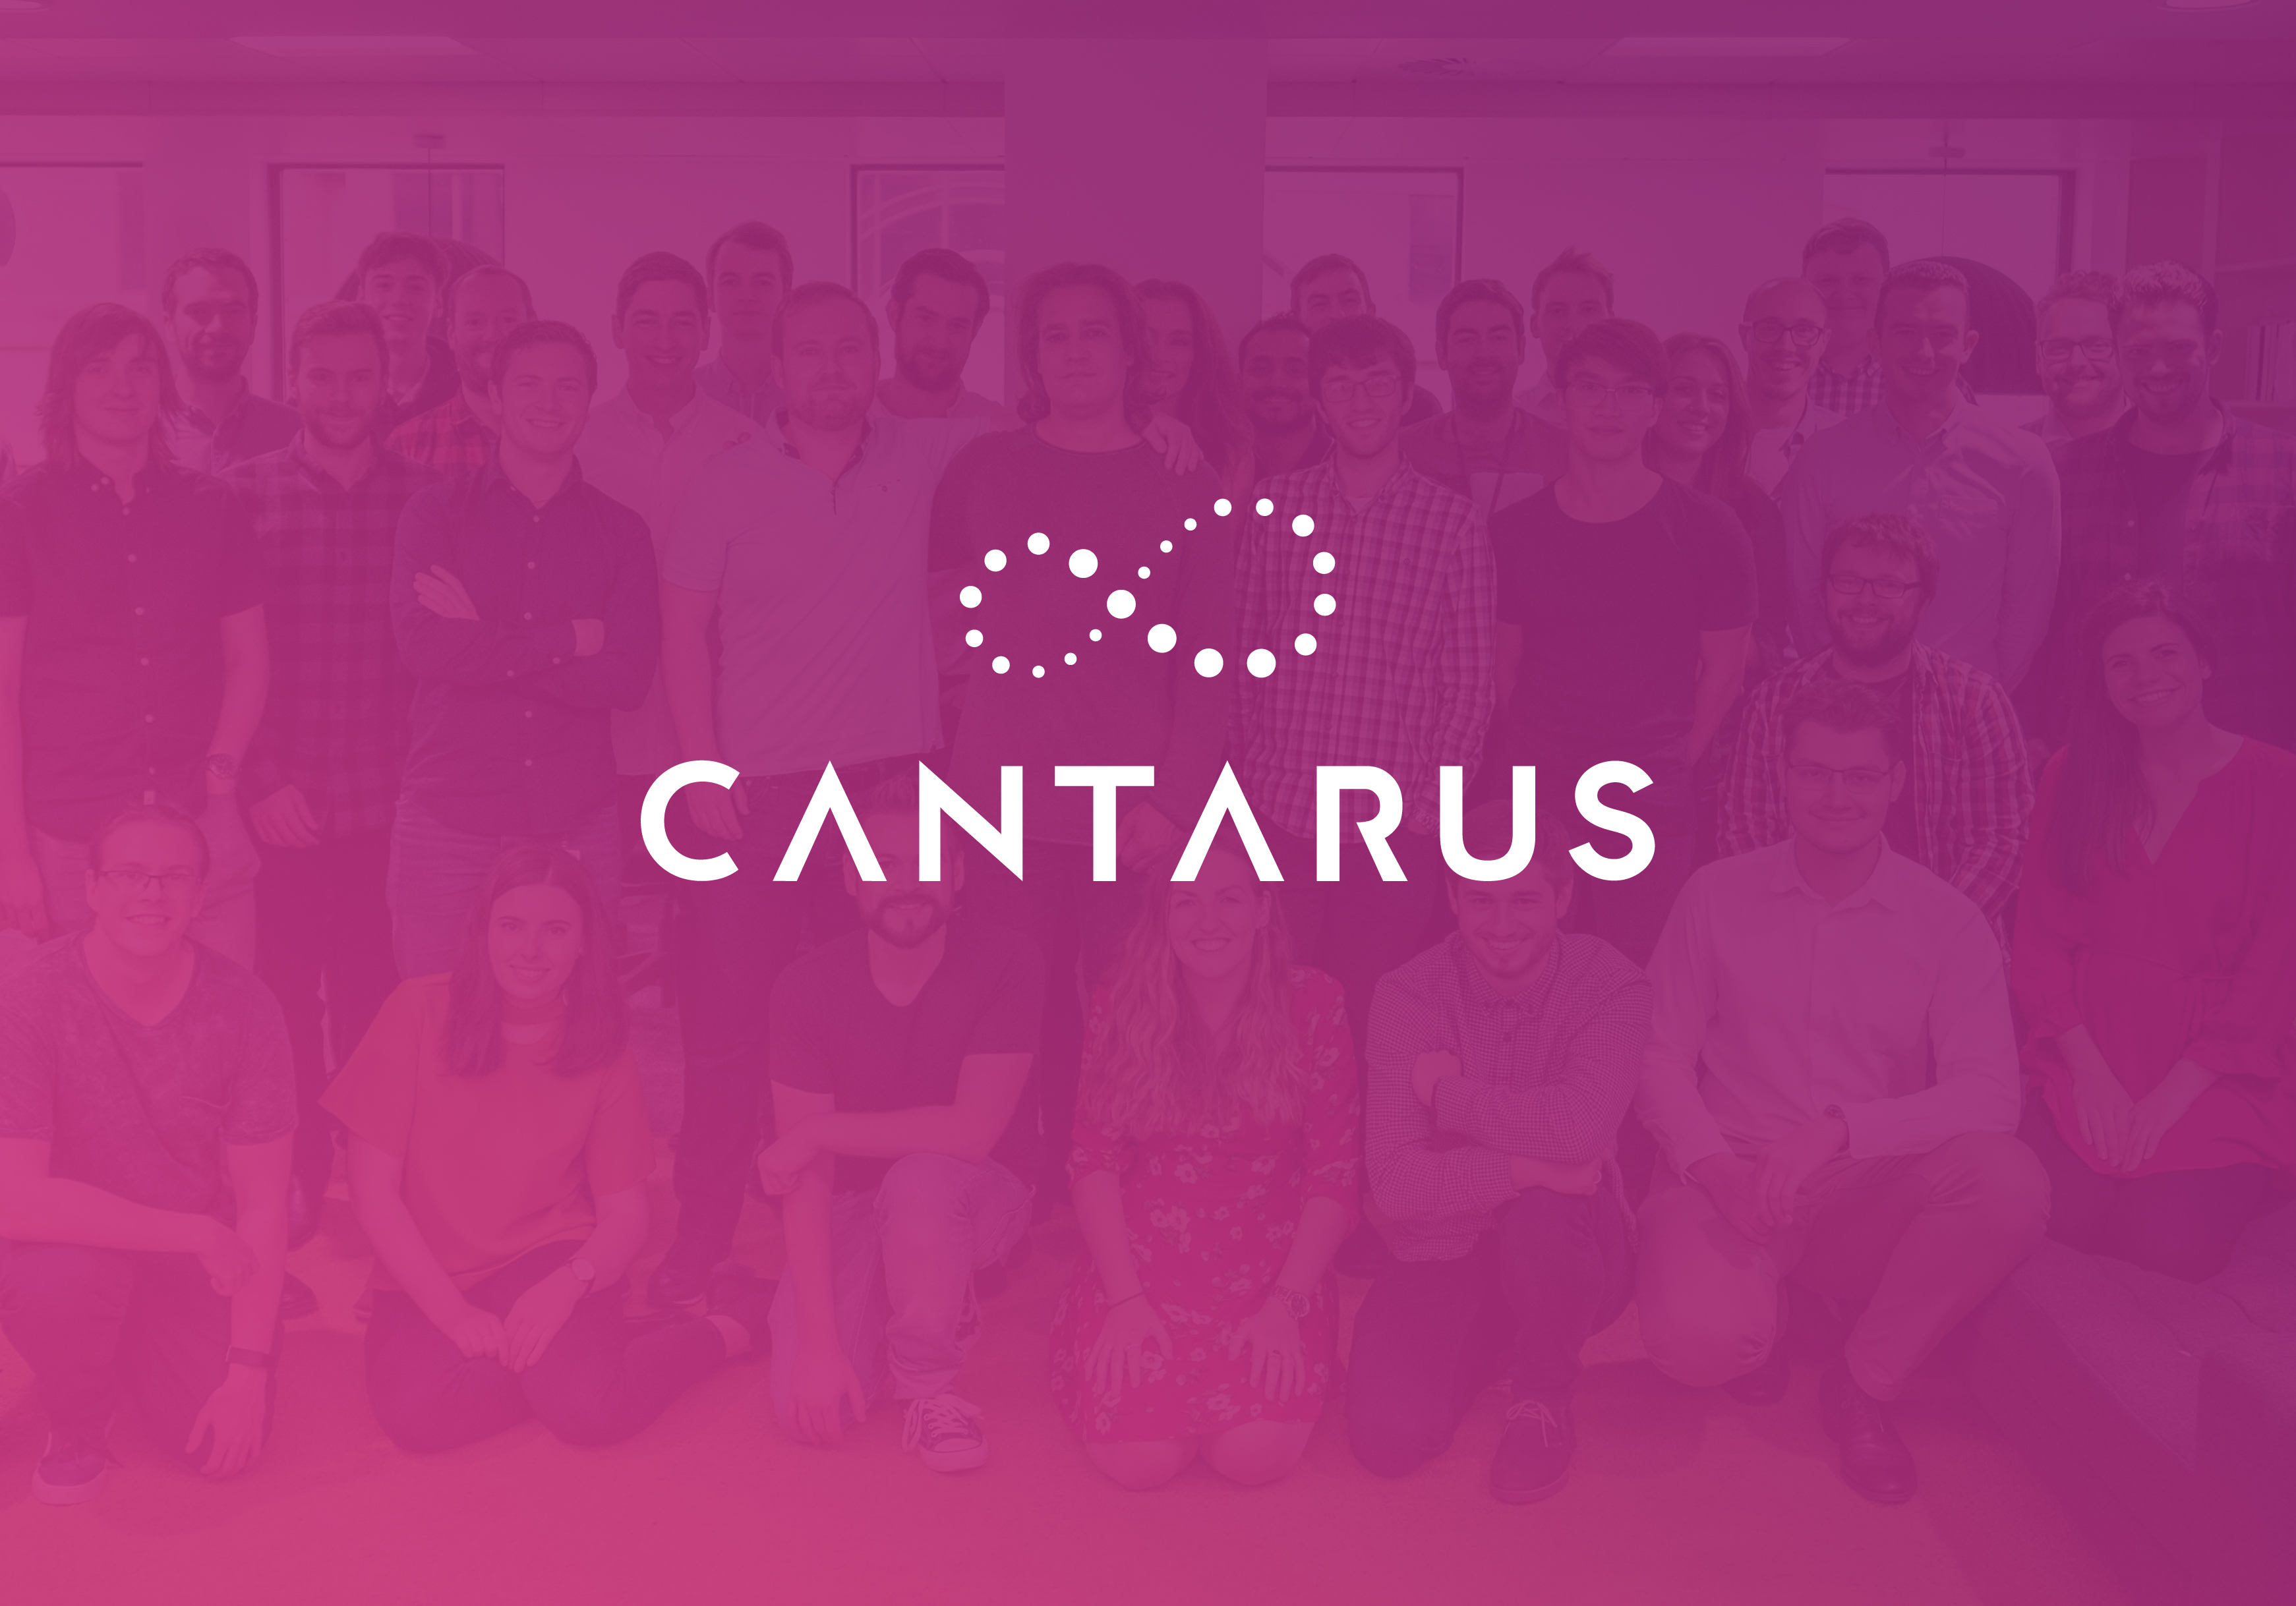 Cantarus announces Director buy-out